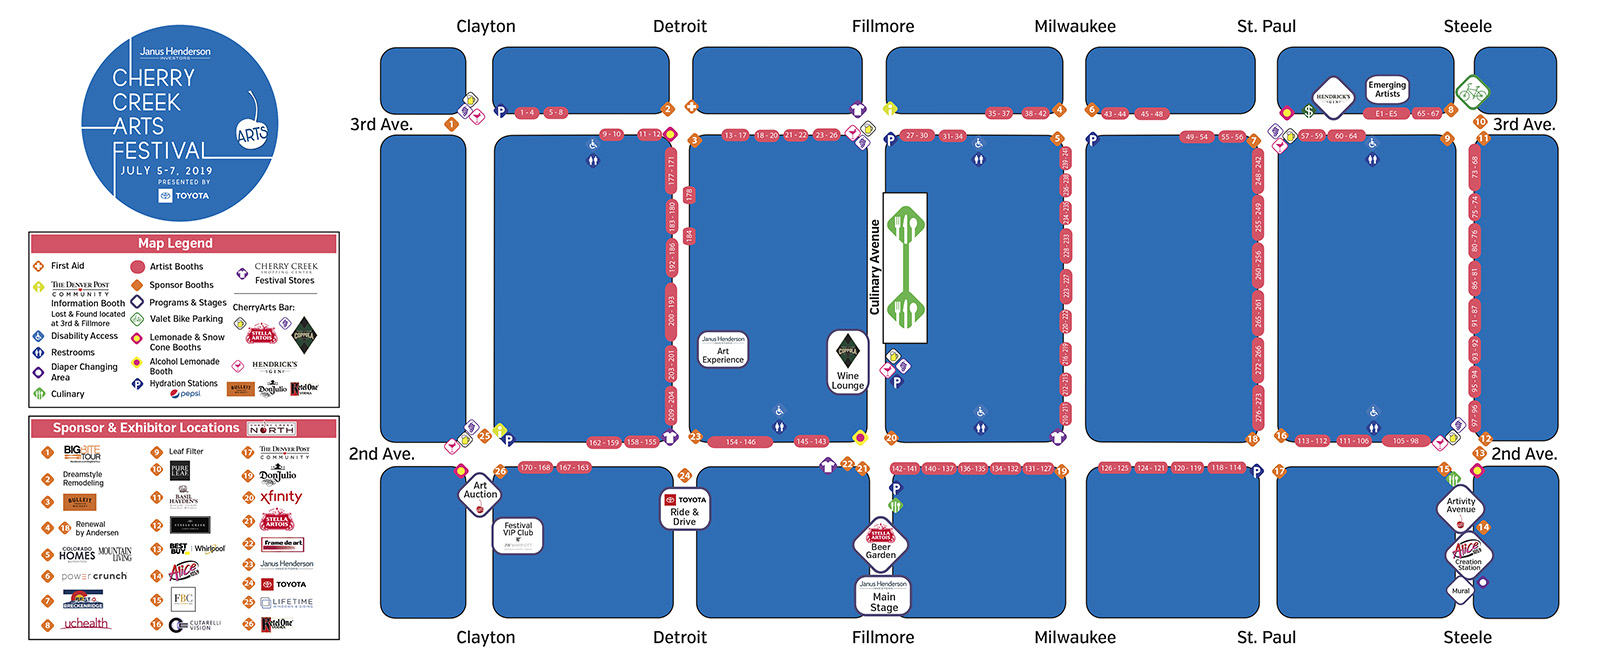 Cherry Creek Arts Festival Directions & Maps - Cherry Creek